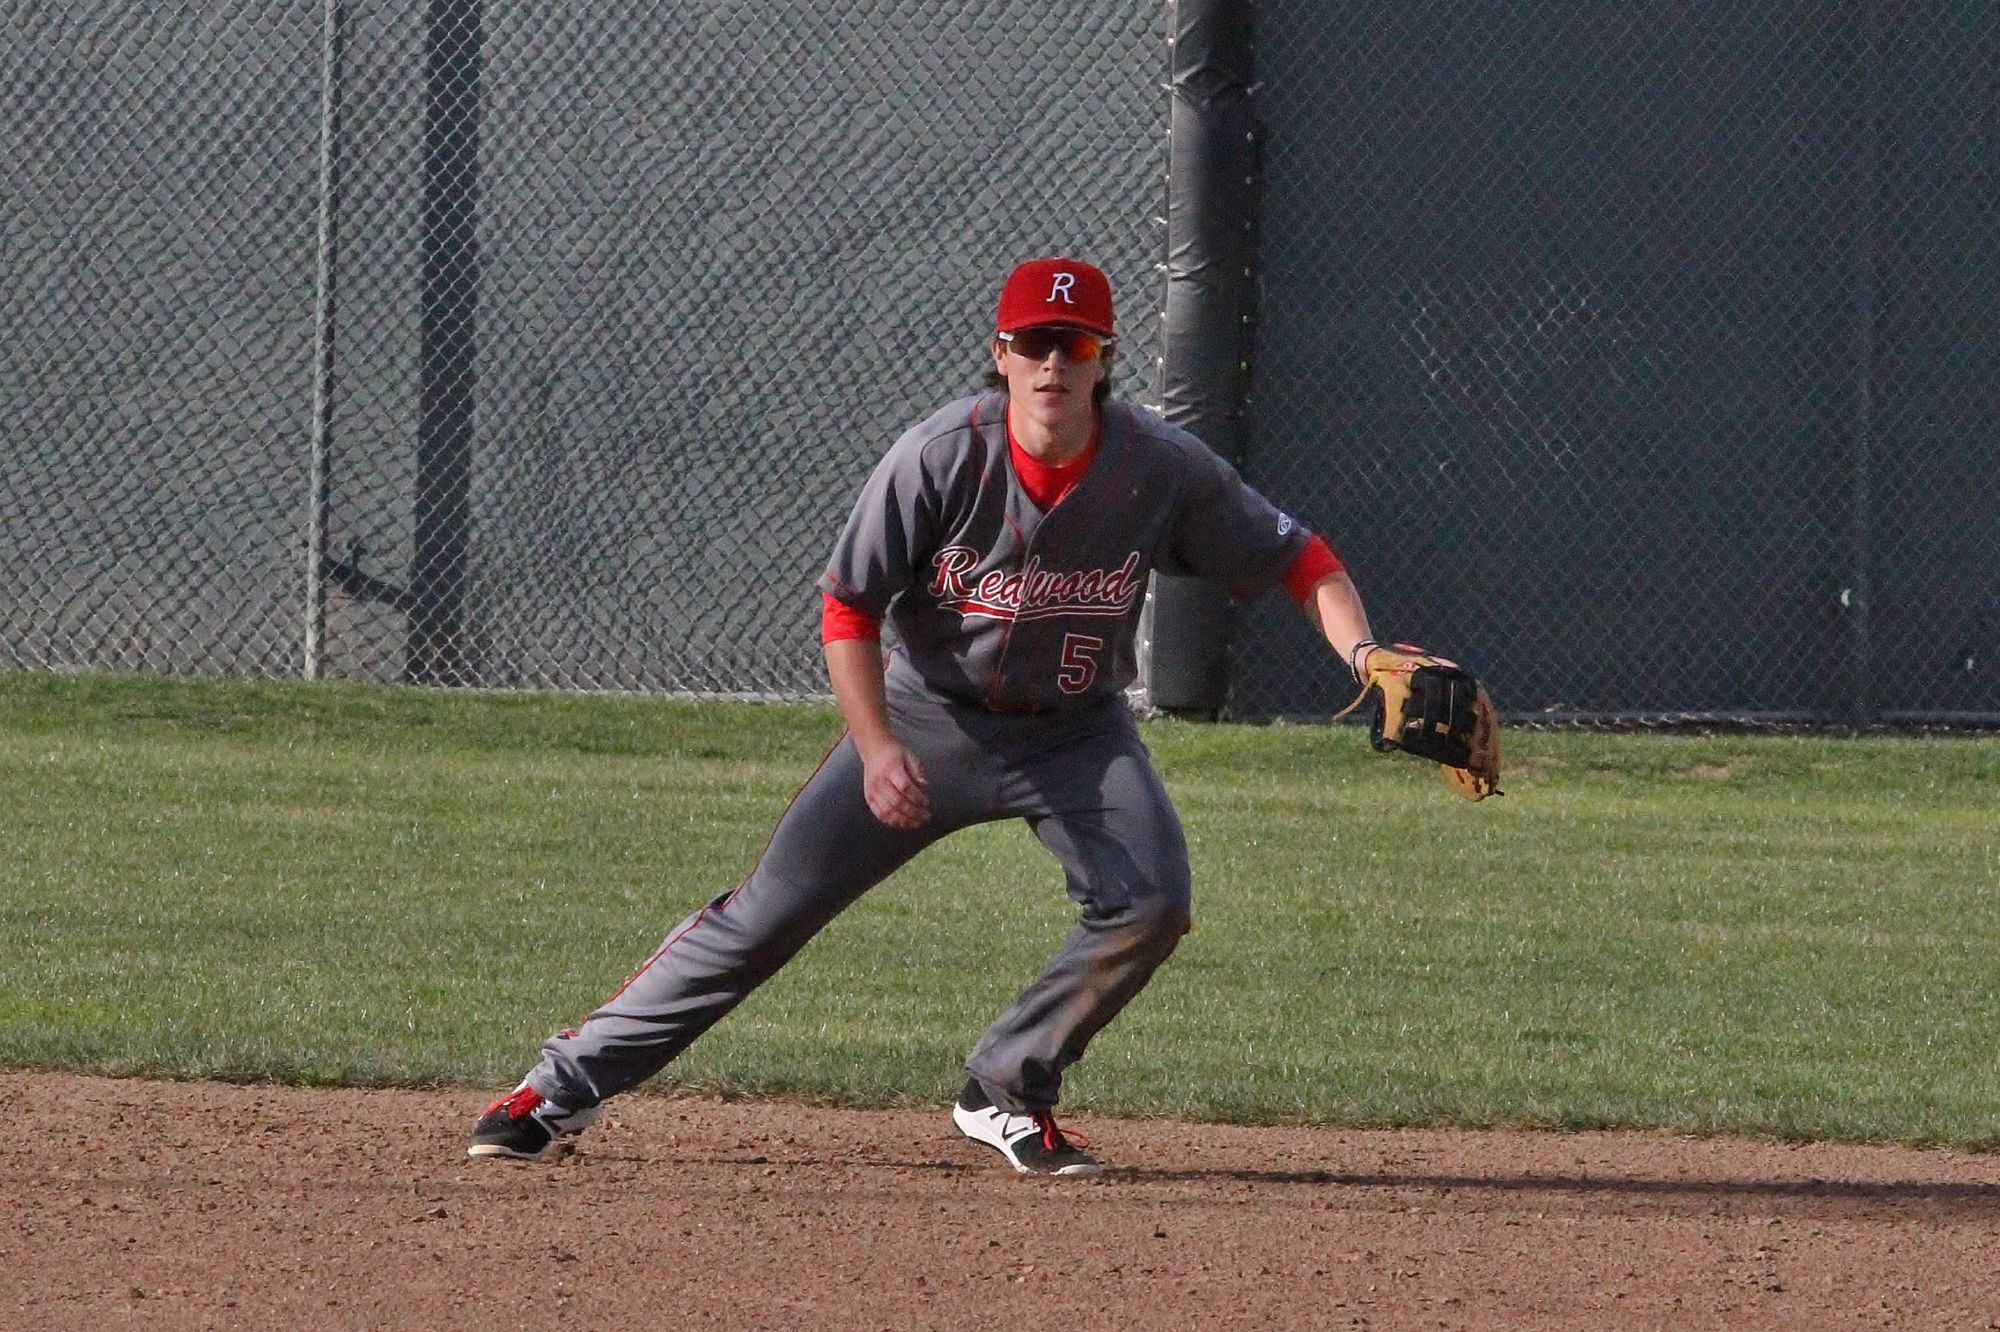 Moving to field a ground ball, Zeisler's career at Redwood has prompted shifts throughout different positions on the diamond